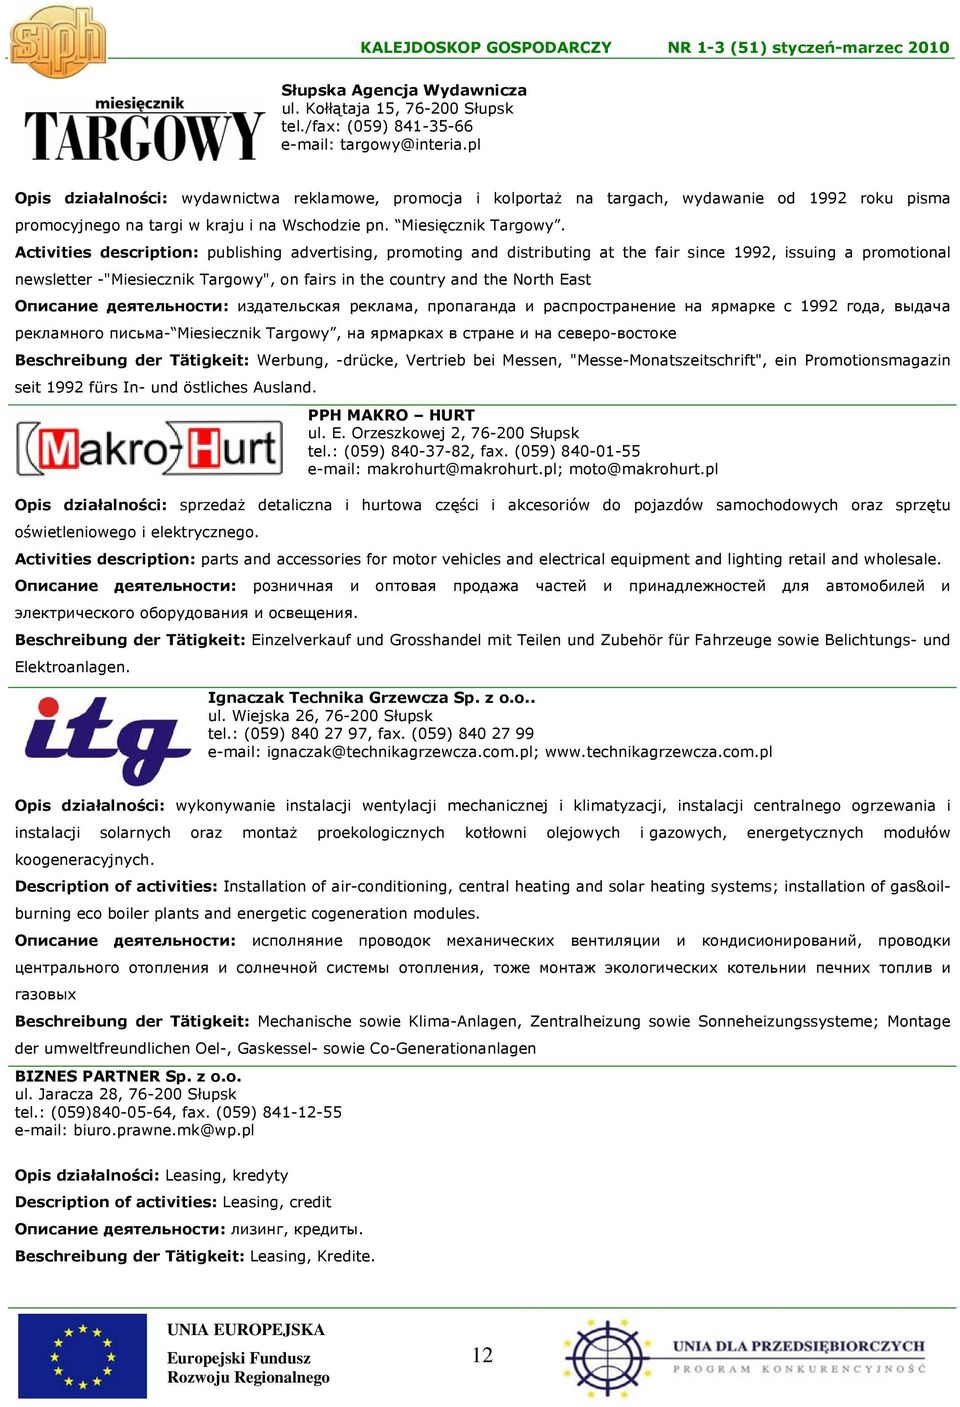 "Activities description: publishing advertising, promoting and distributing at the fair since 1992, issuing a promotional newsletter -""Miesiecznik Targowy"", on fairs in the country and the North East"